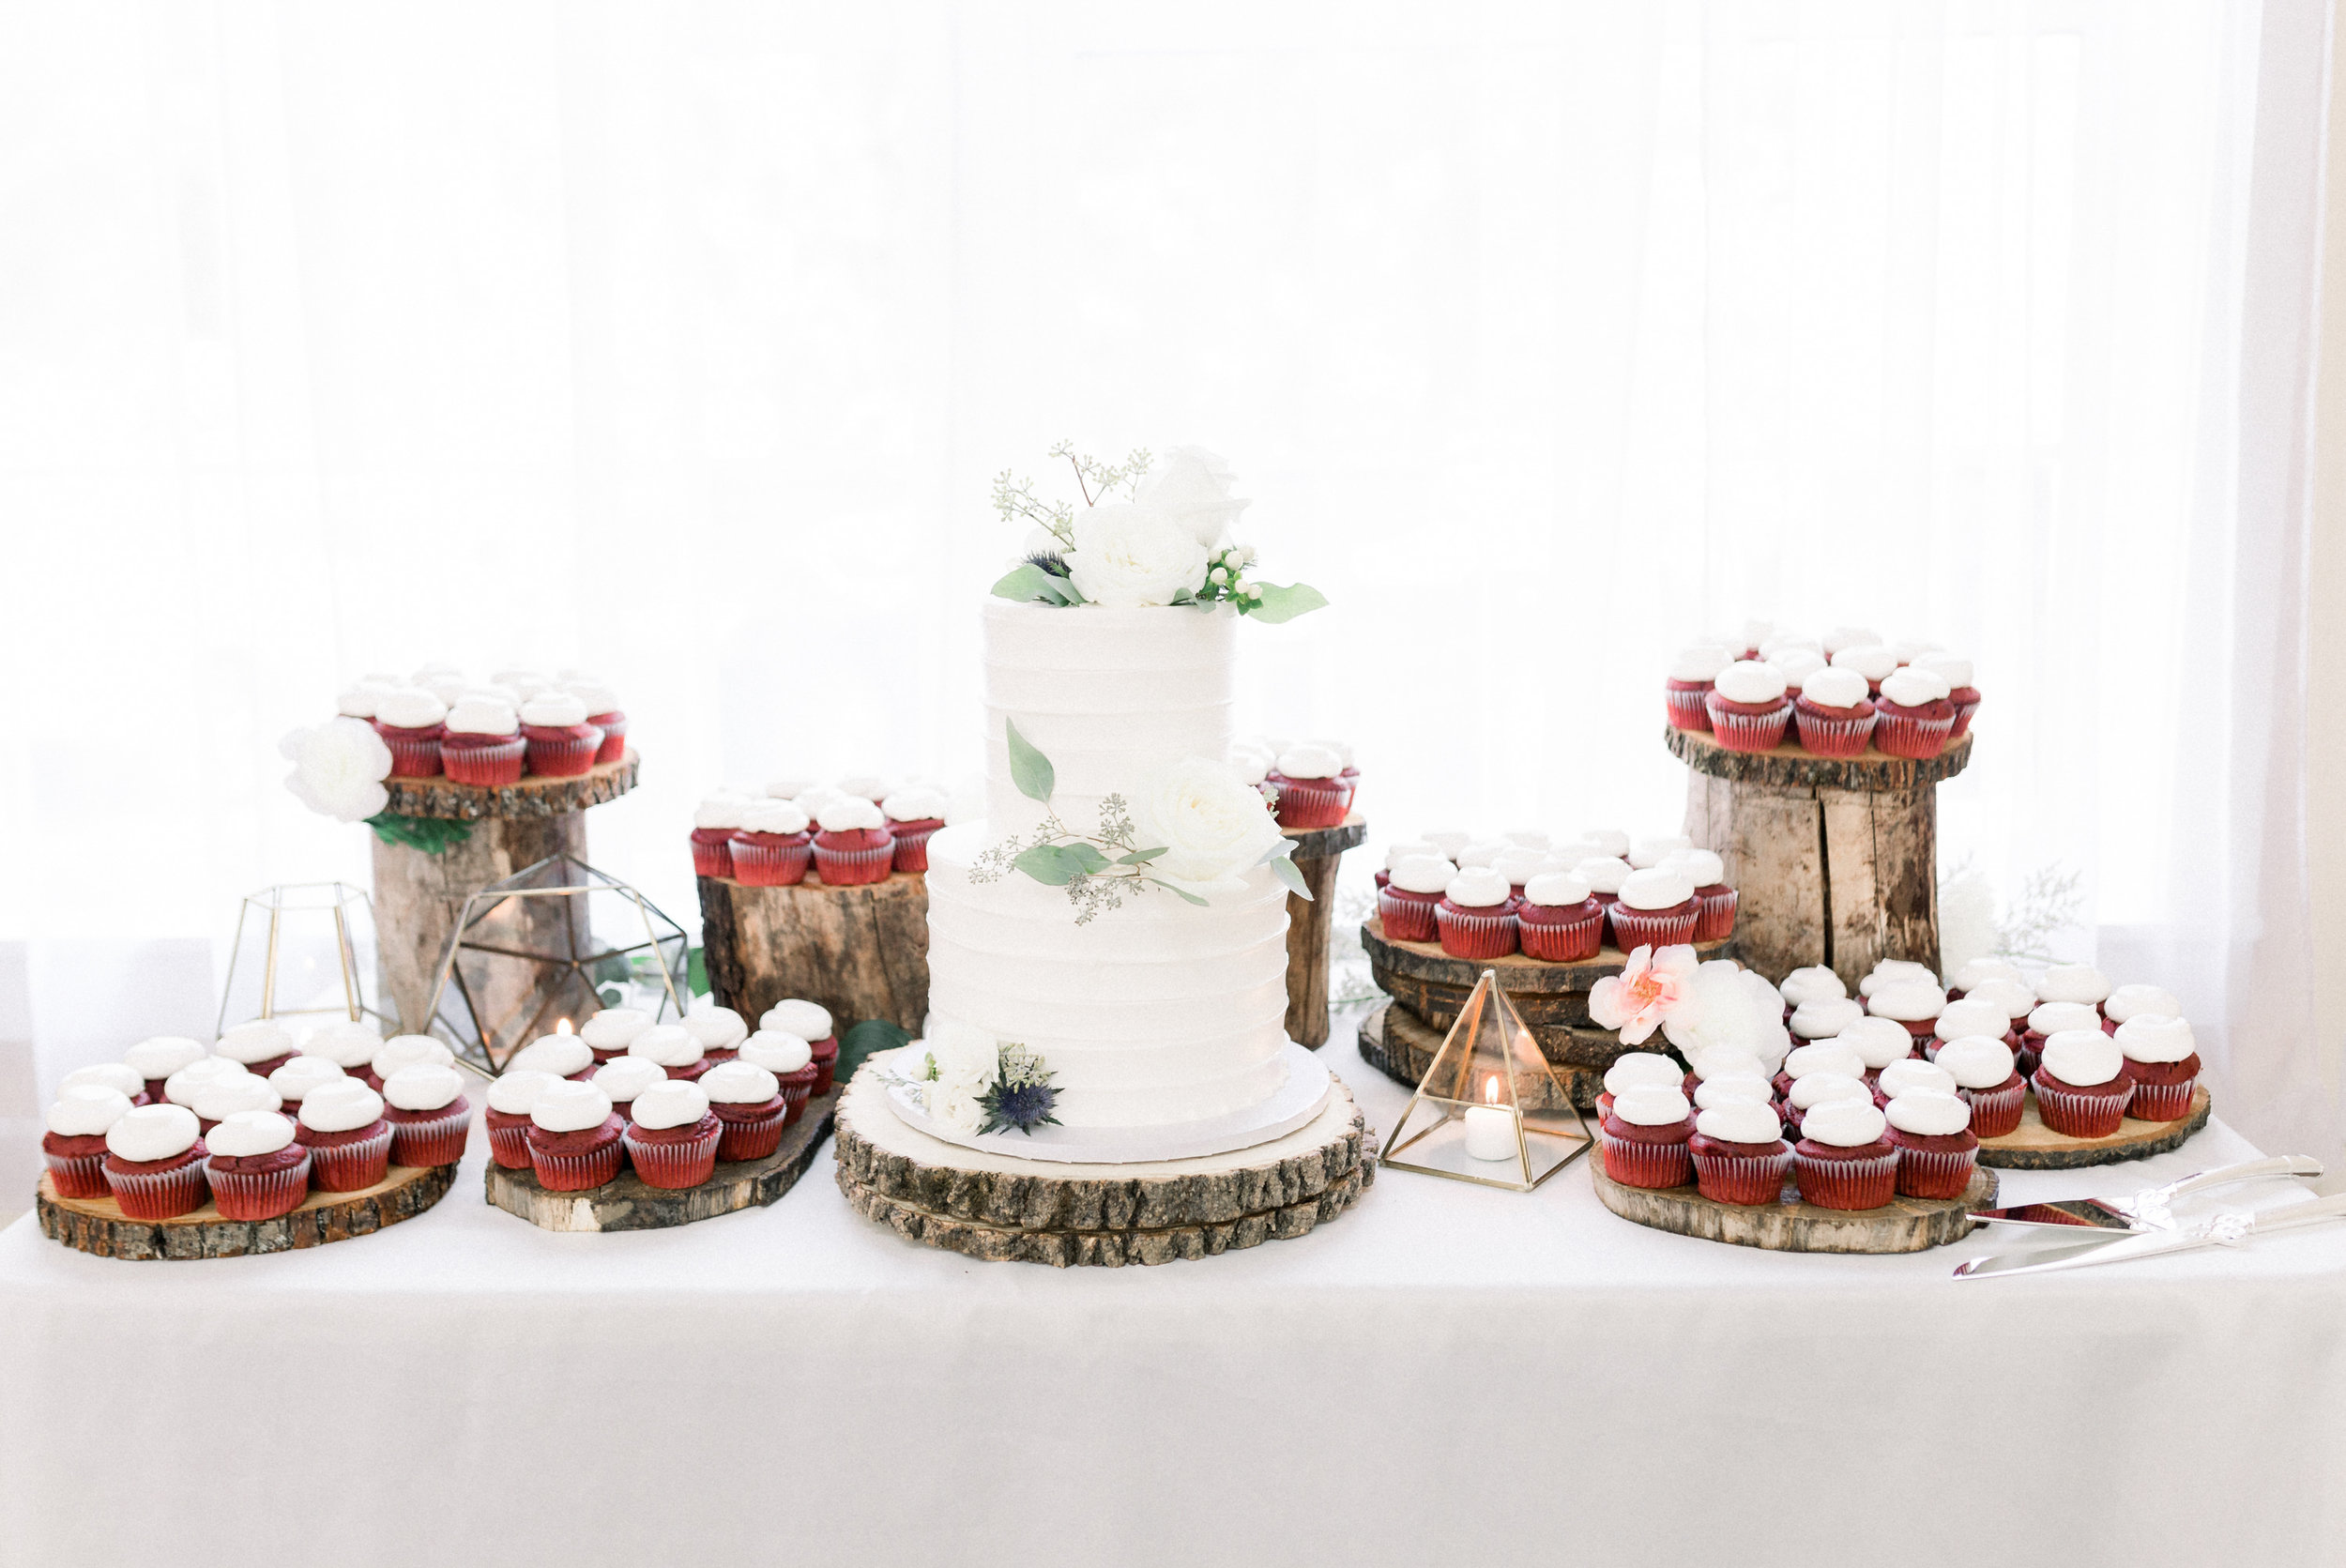 Wedding cake and dessert table on wood platforms for Pittsburgh wedding planned by Exhale Events. Find more wedding inspiration at exhale-events.com!